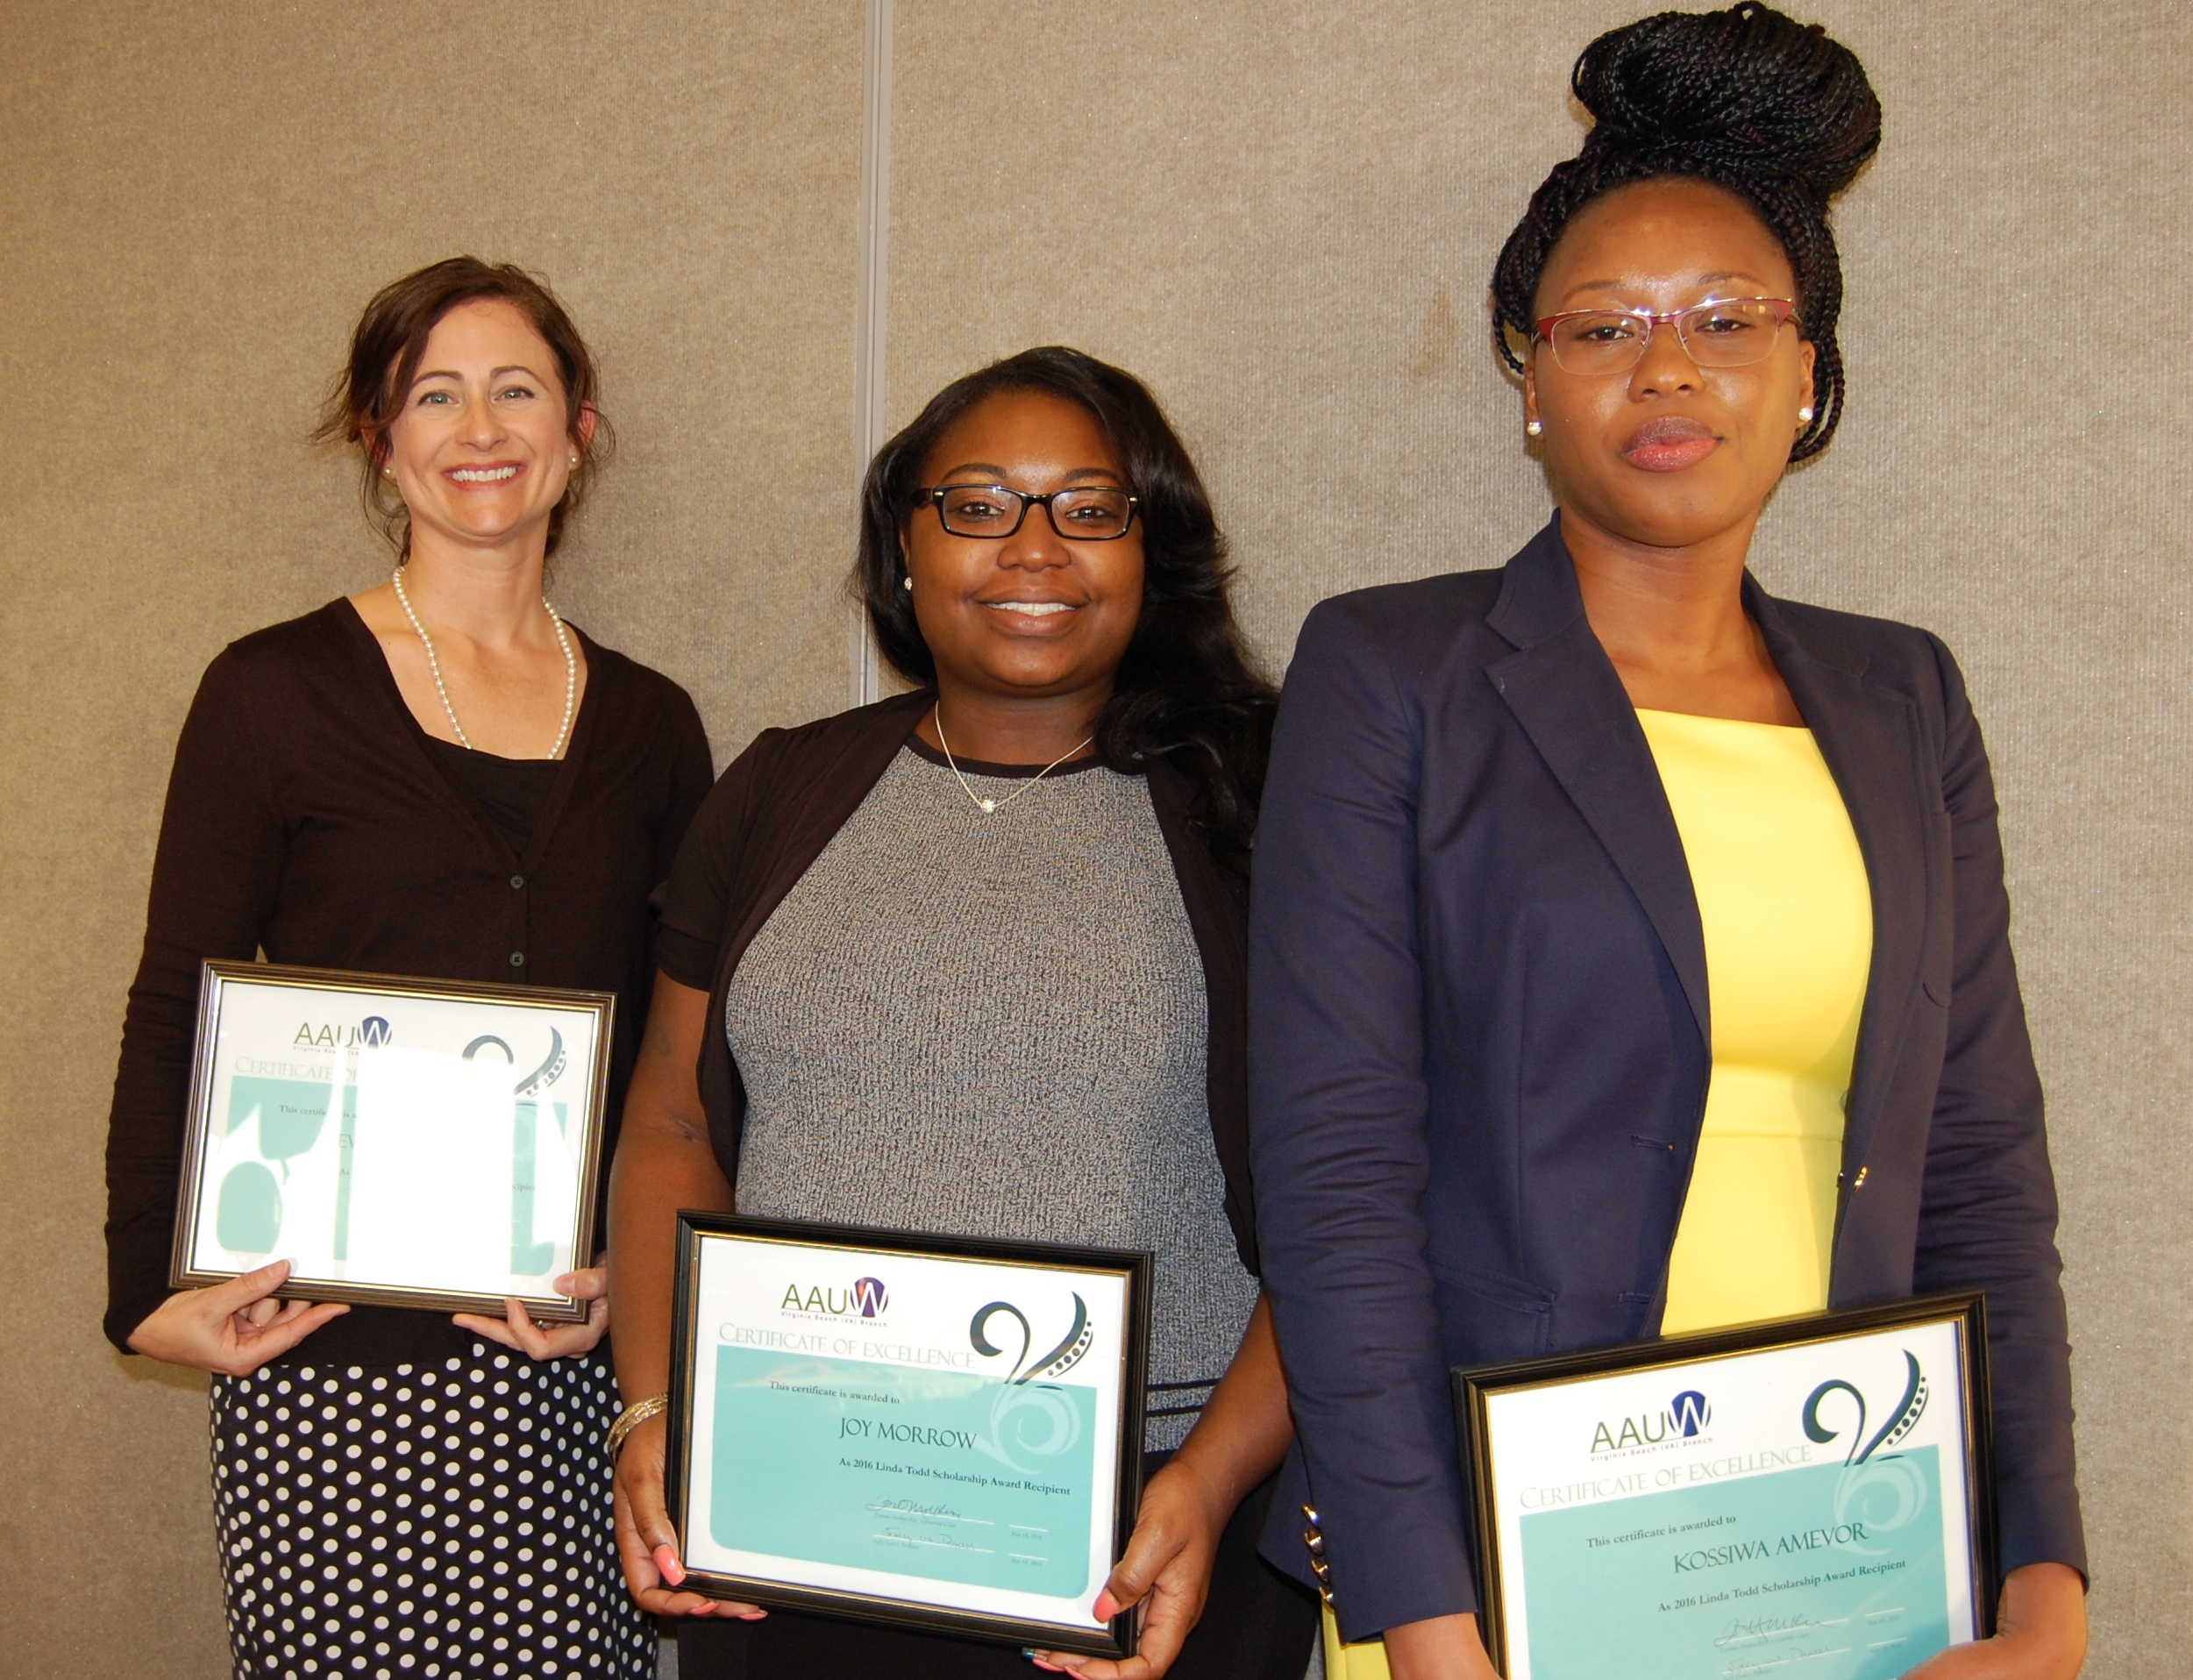 The 2013 Linda Todd Scholarship Recipients (l-r) Eveline Bruce, Joy Morrow, and Kossiwa Amevor